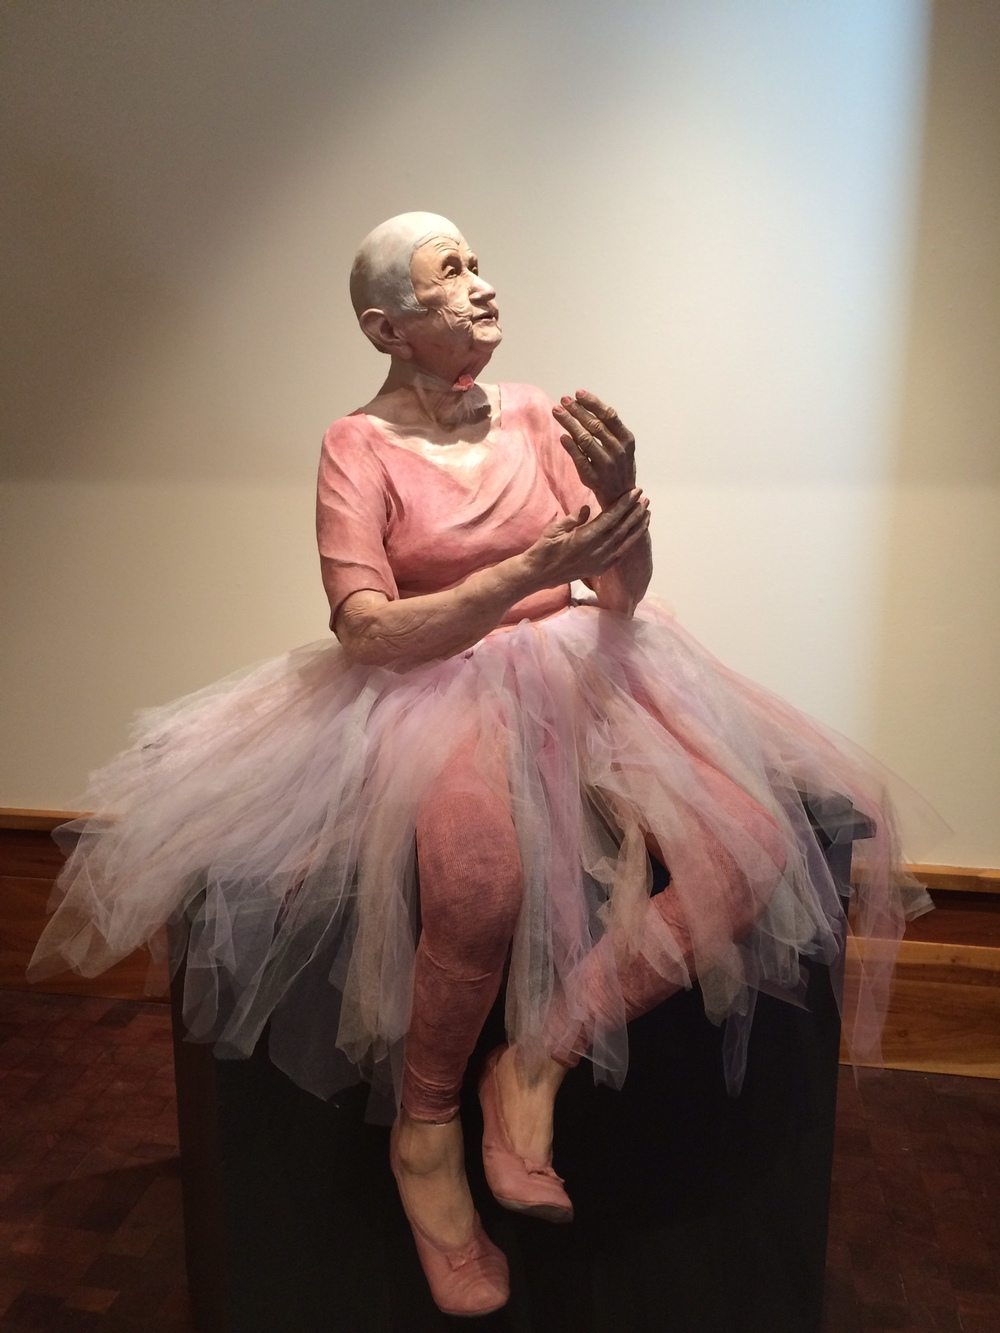 Lola , Michaela Valli Groeblacher, chosen by a member of San Angelo Civic Ballet